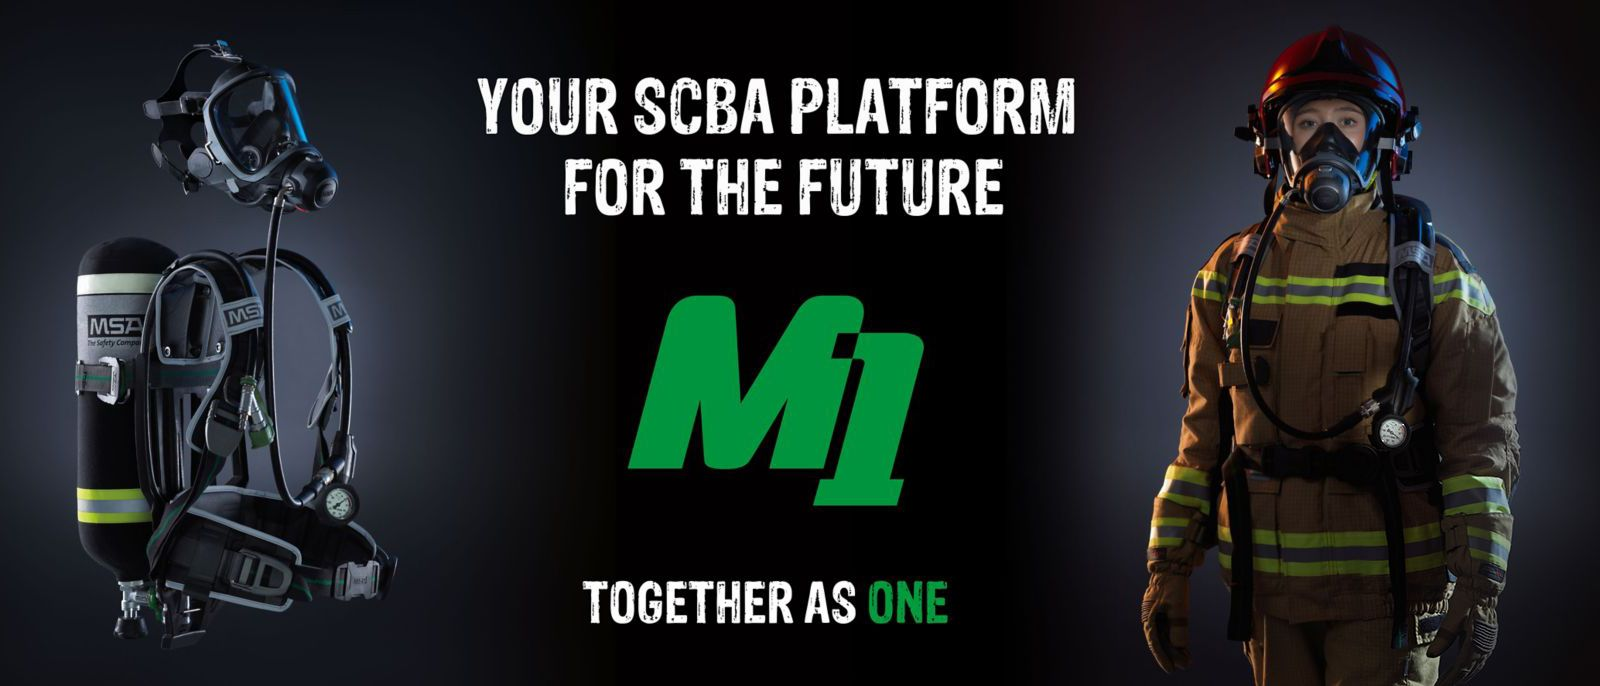 The M1 SCBA platform from MSA is coming soon